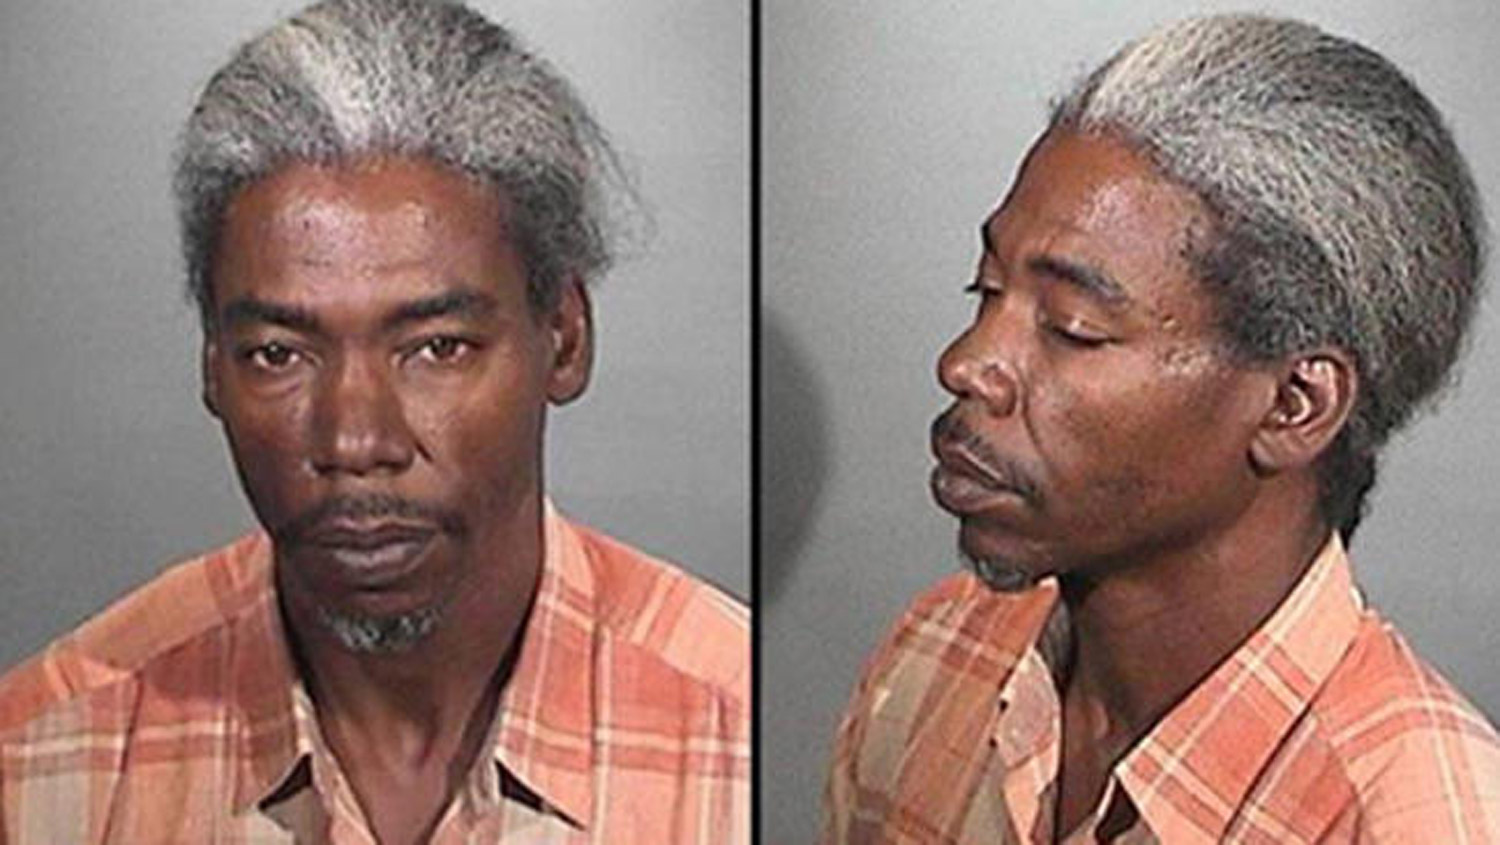 Clarence Duwell Dear is shown in a photo provided by the Pomona Police Dept. Pomona Police Dept.